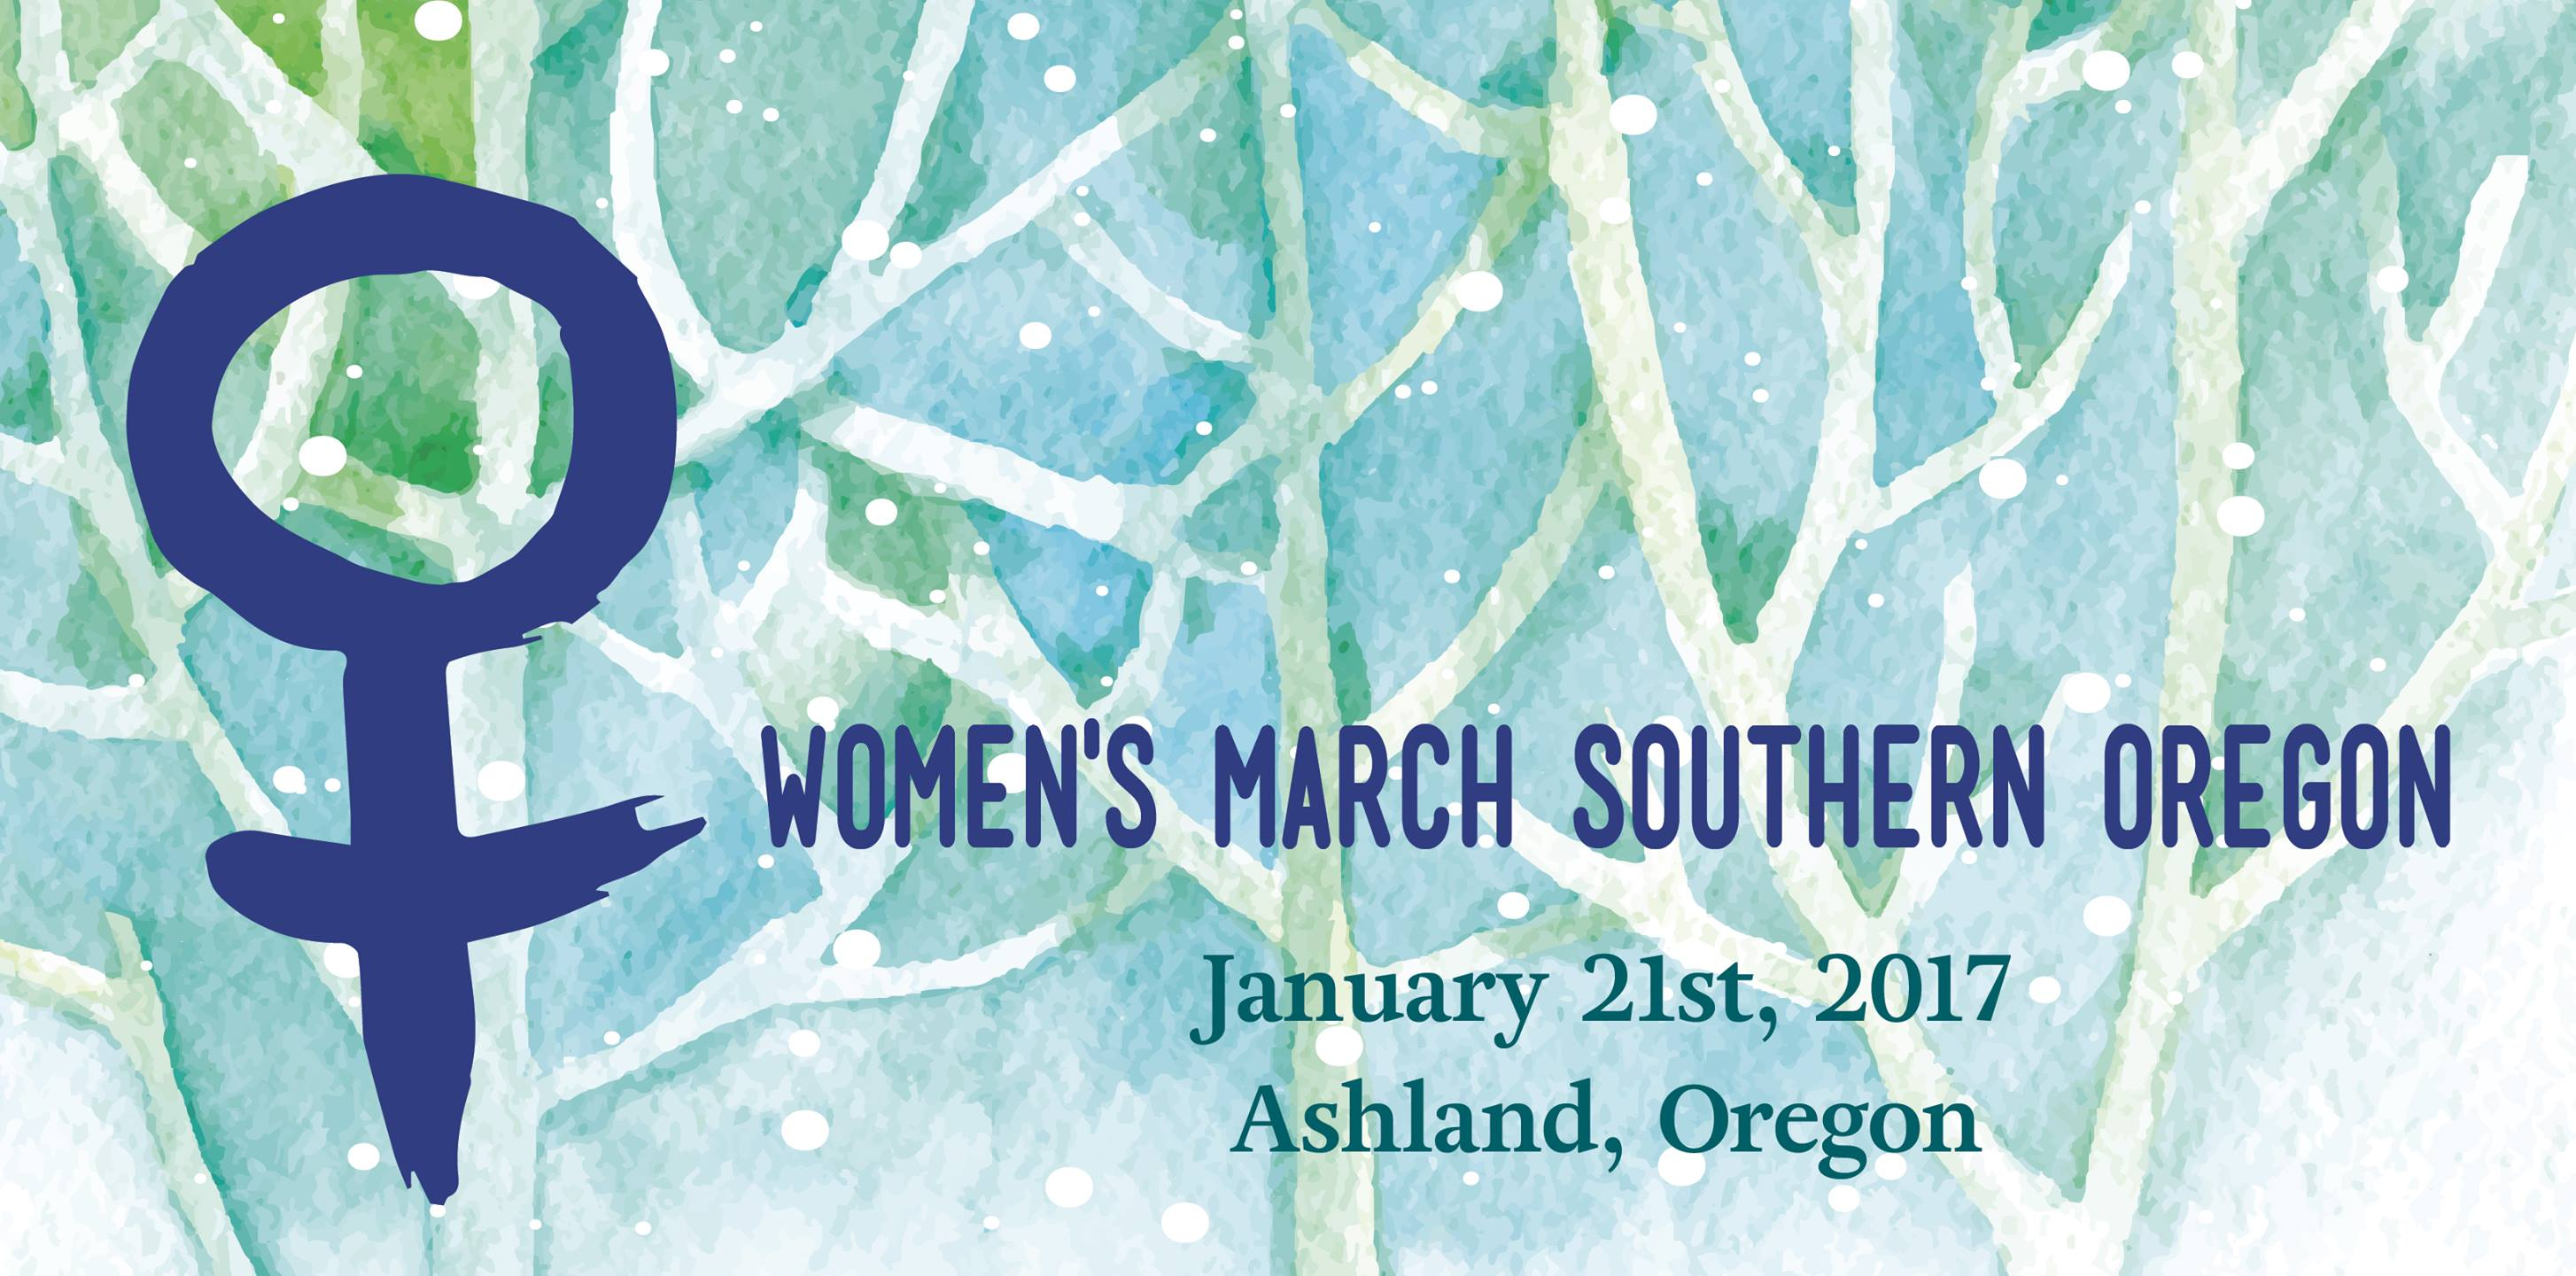 Women's March Southern Oregon